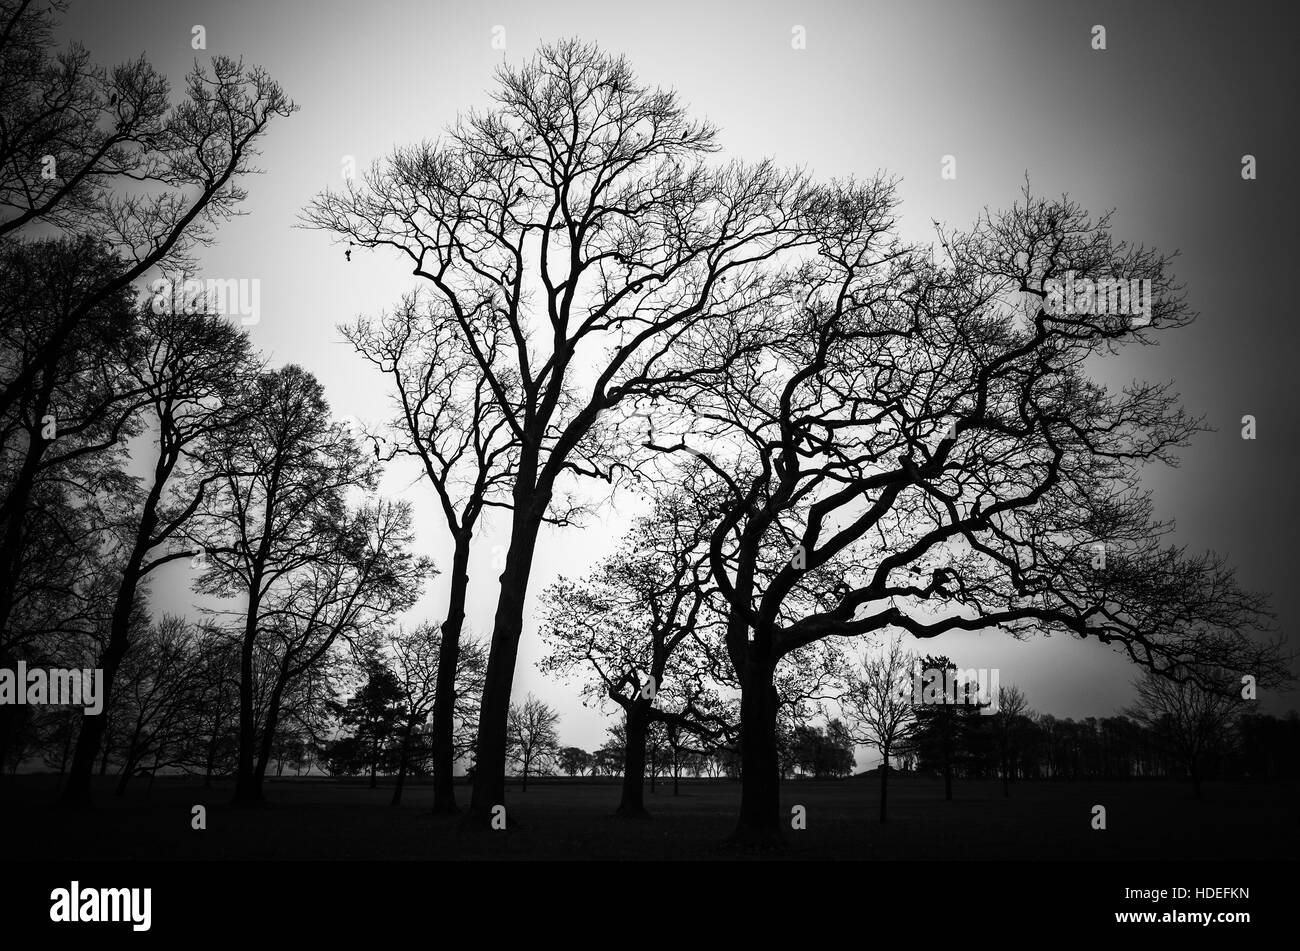 Leafless bare trees in dark forest. Stylized natural silhouette background photo - Stock Image